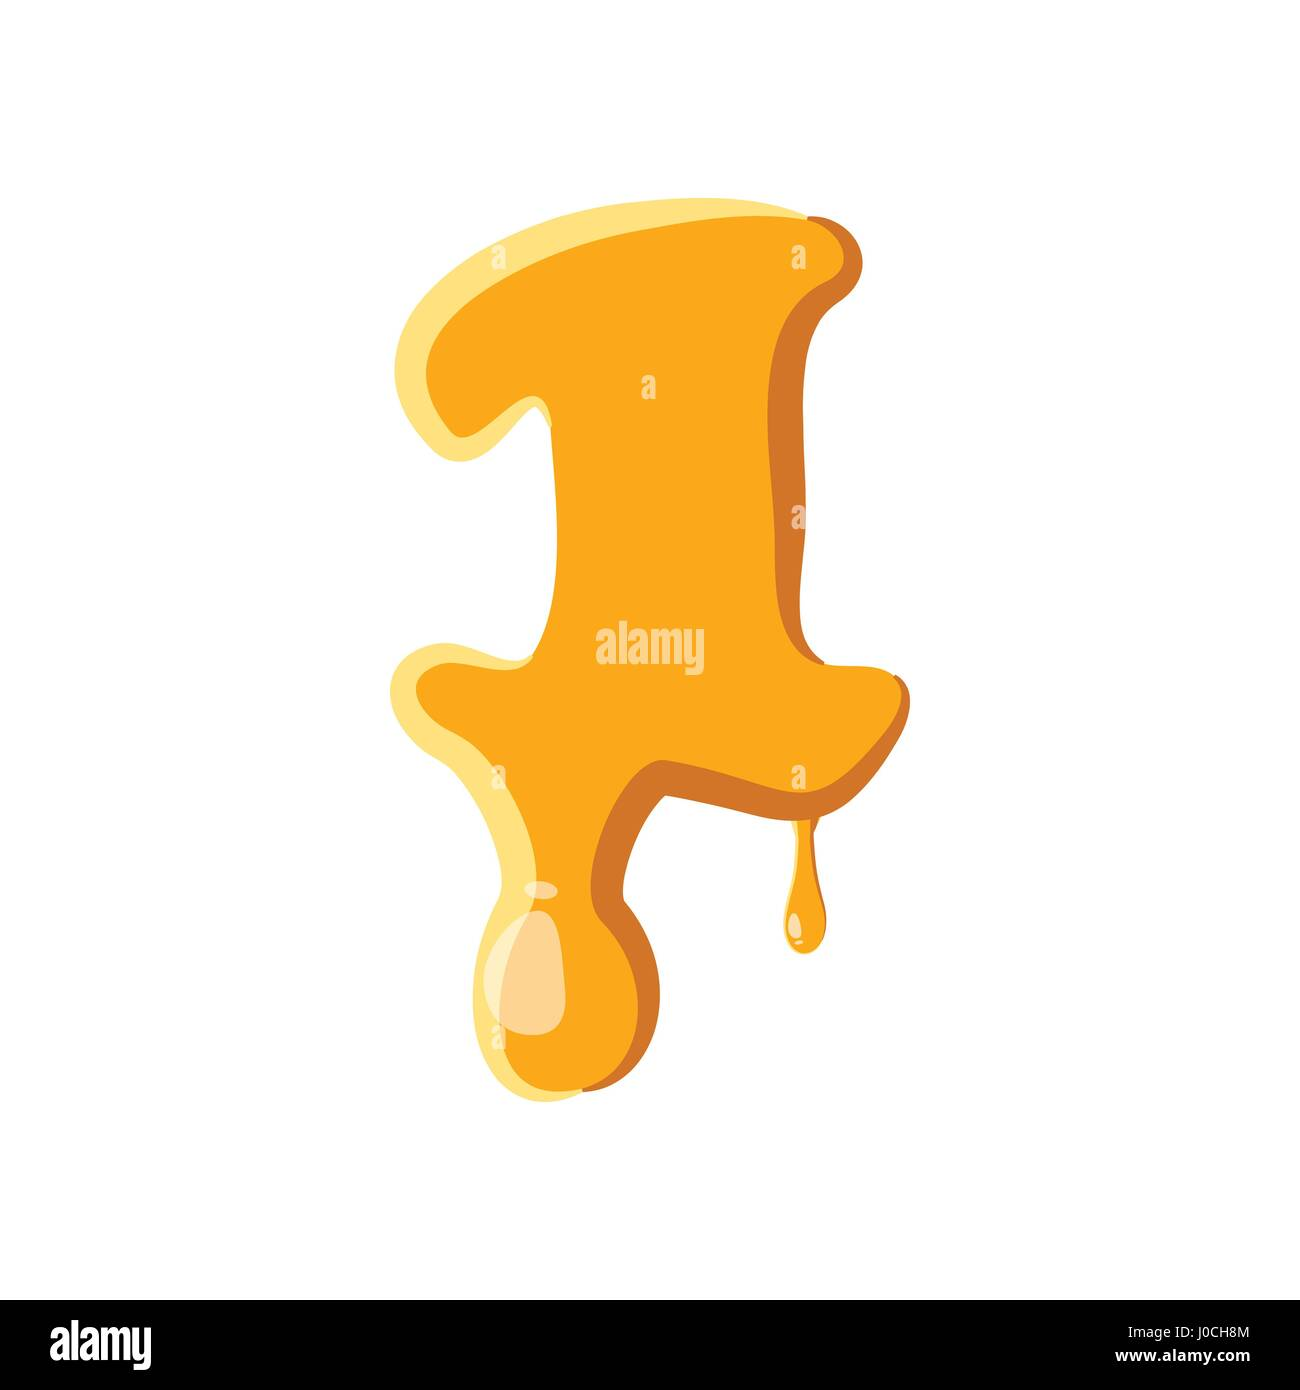 Number 1 from honey icon - Stock Image